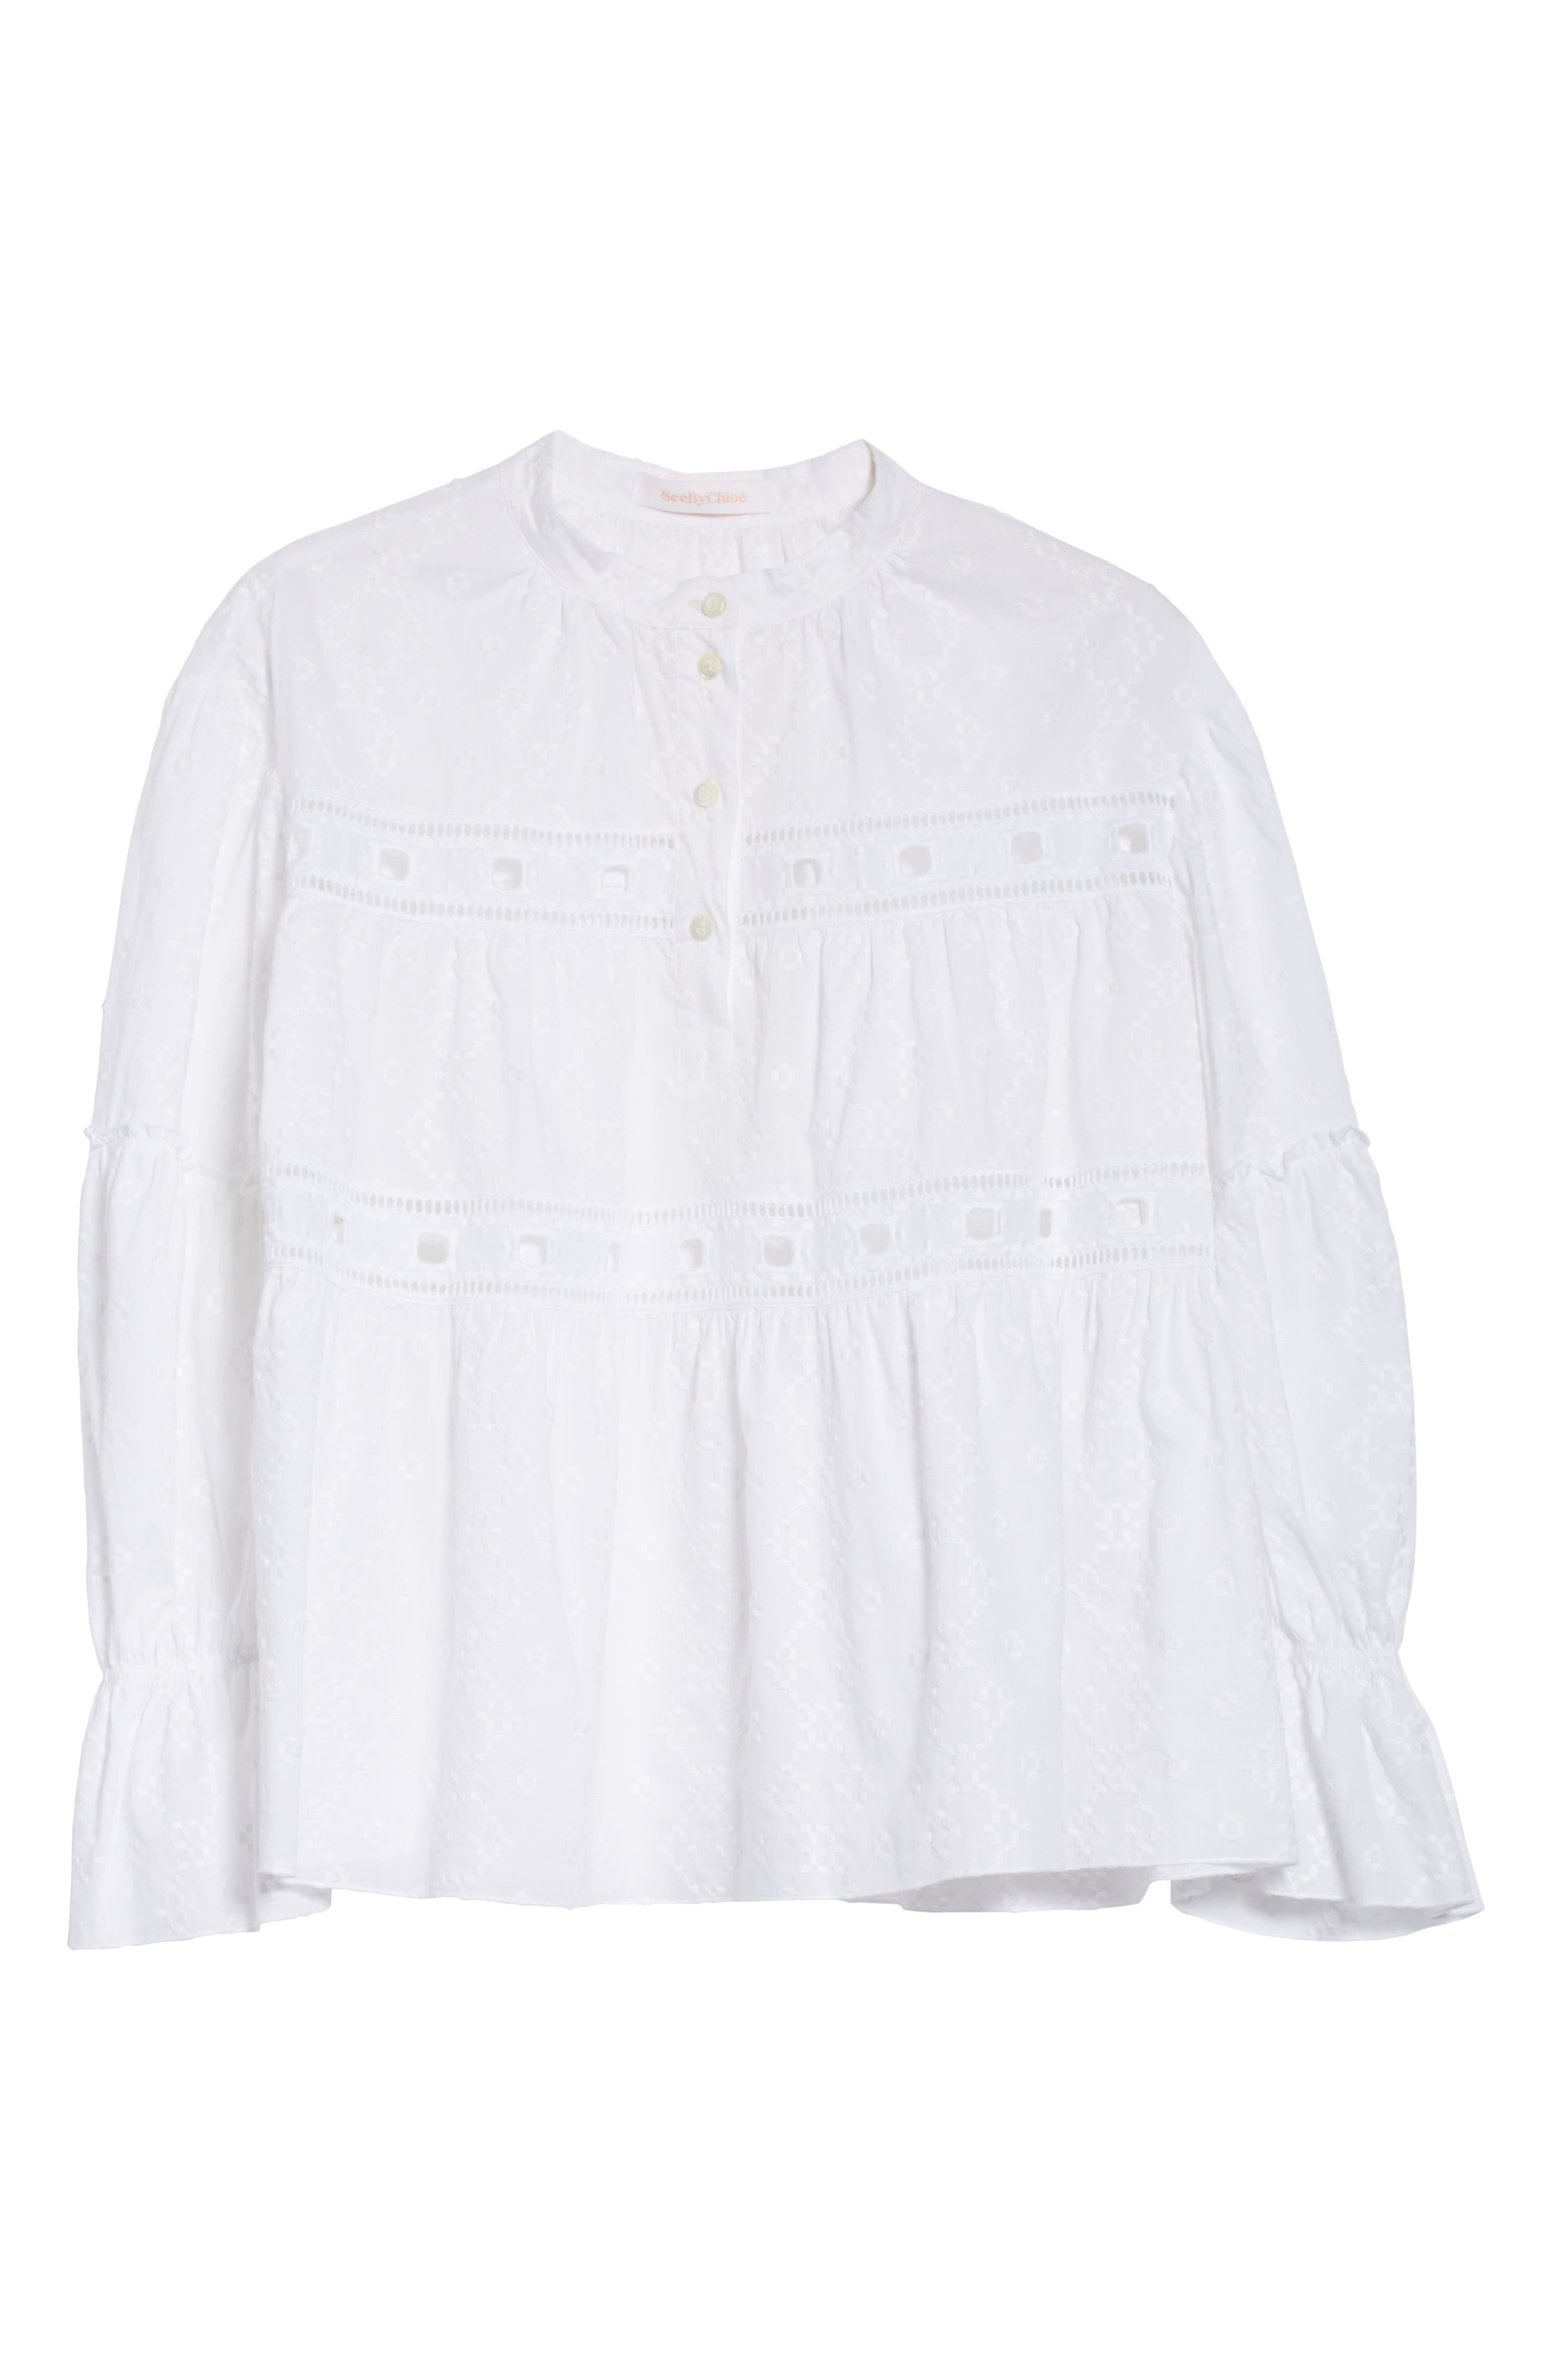 Embroidered Eyelet Blouse,                             Alternate thumbnail 6, color,                             White